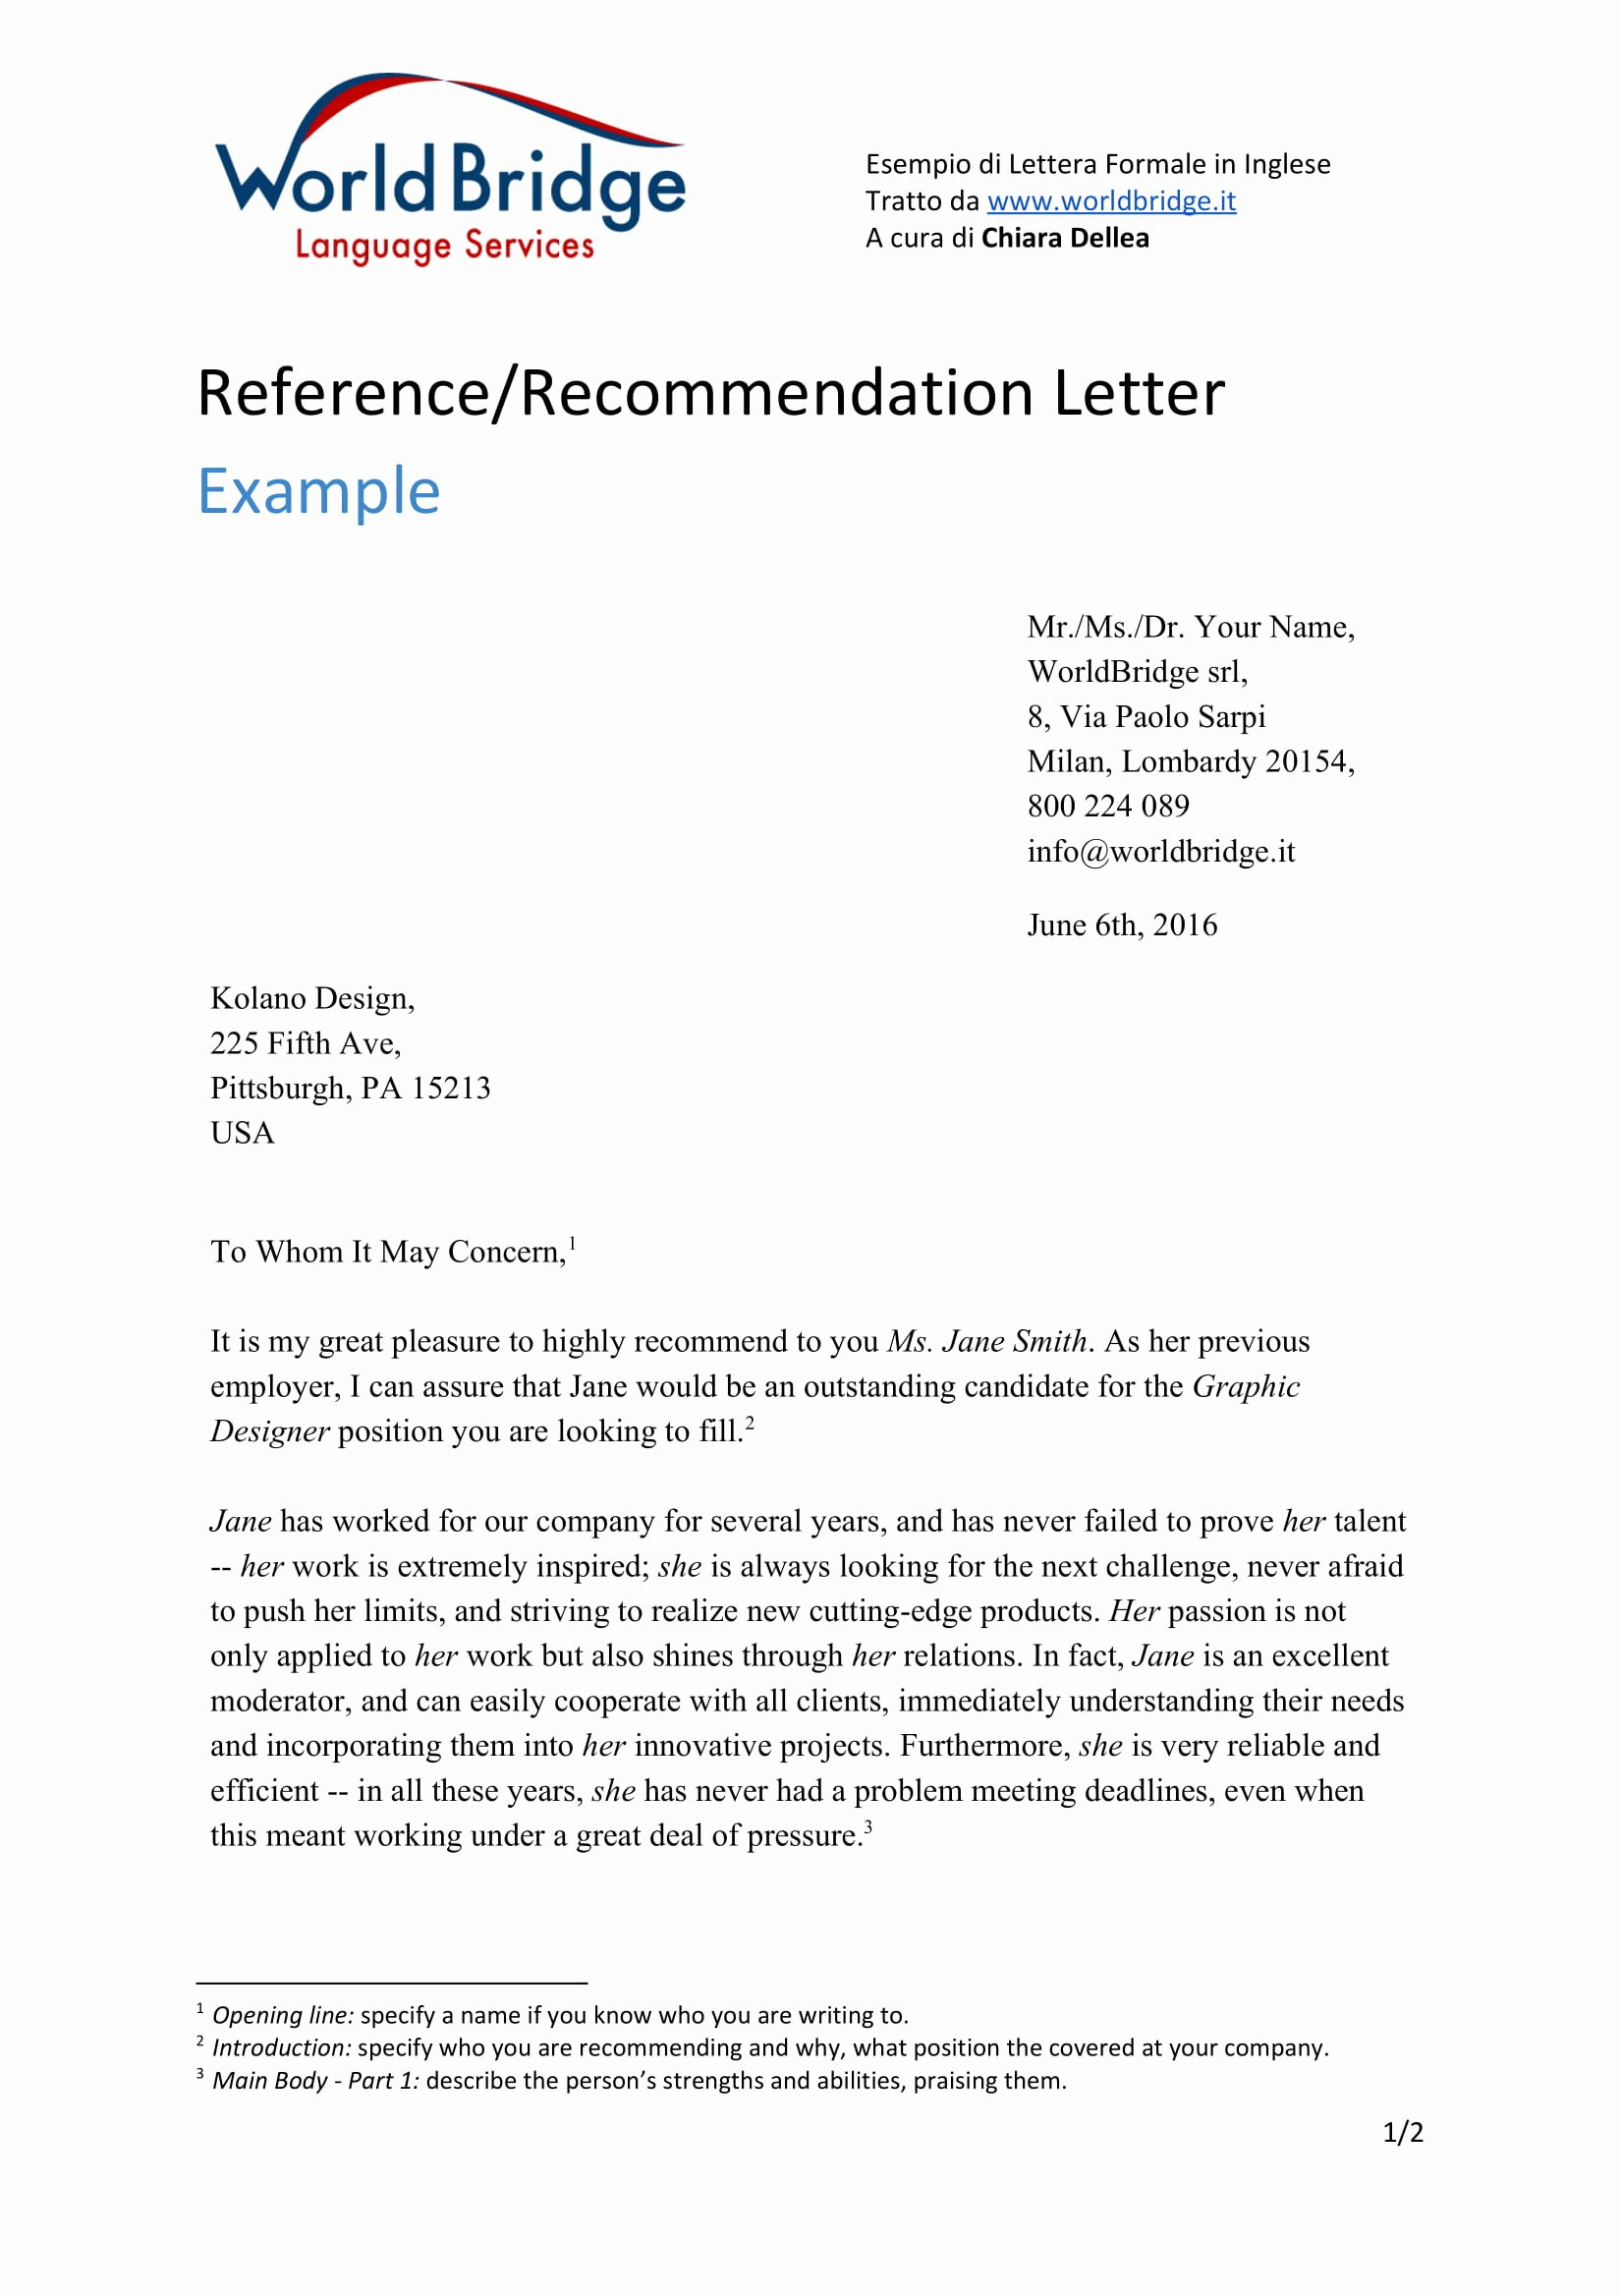 Letter Of Recommendation for Ms Unique Letter Re Mendation From Employer for Ms In Puter